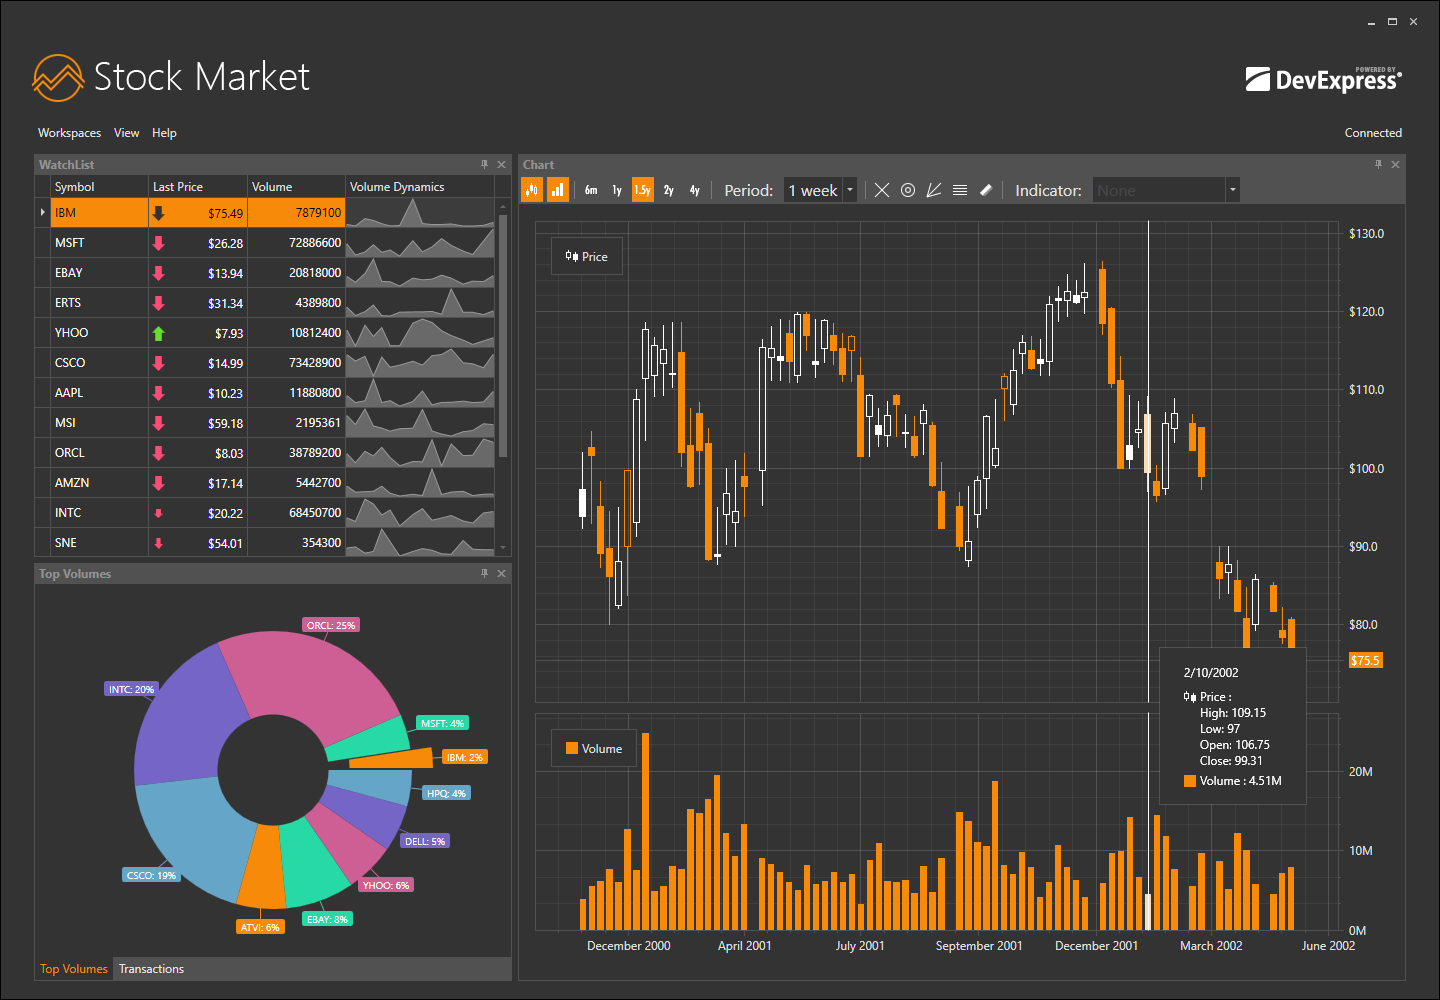 WPF Stock Market App with Financial Charting